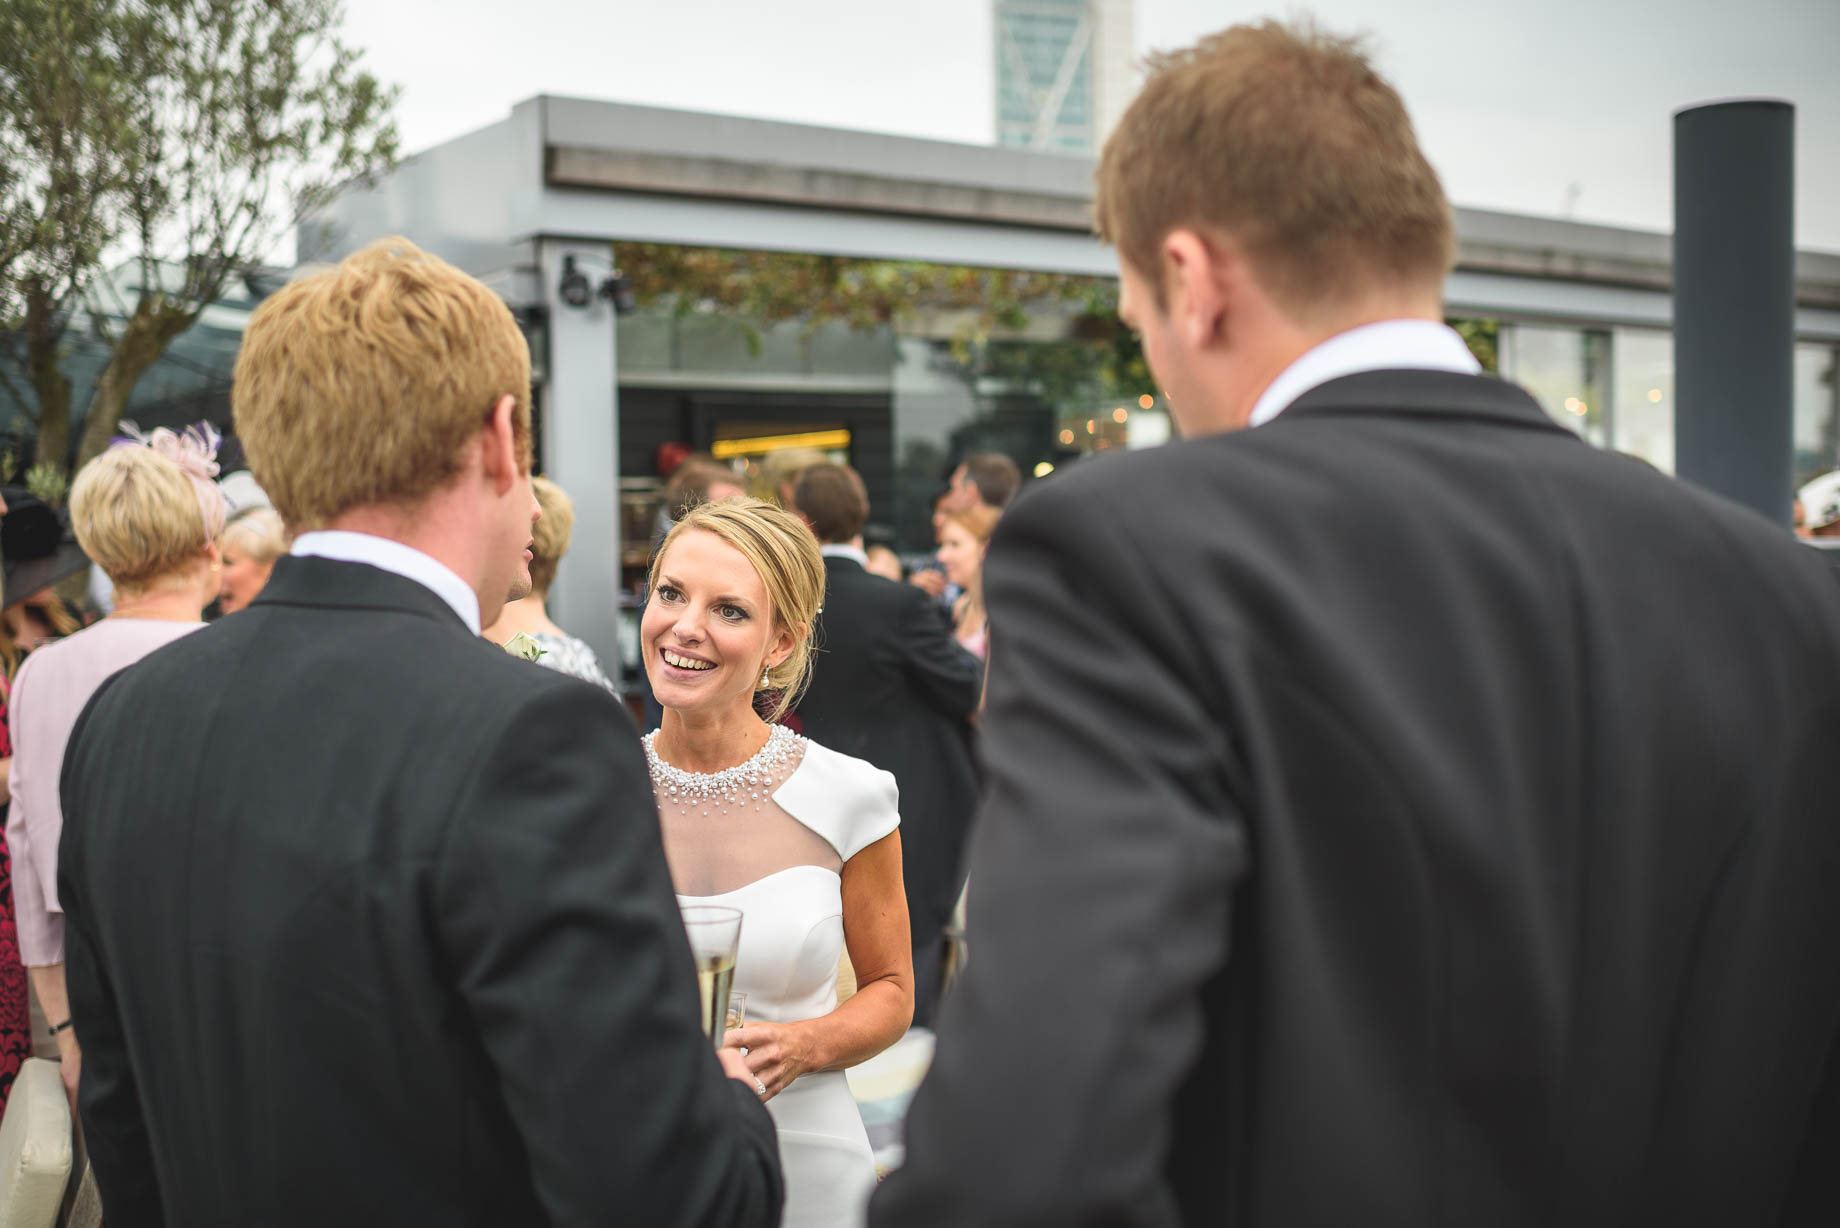 Shoreditch wedding photography - Guy Collier - Kat and Henry (156 of 200)